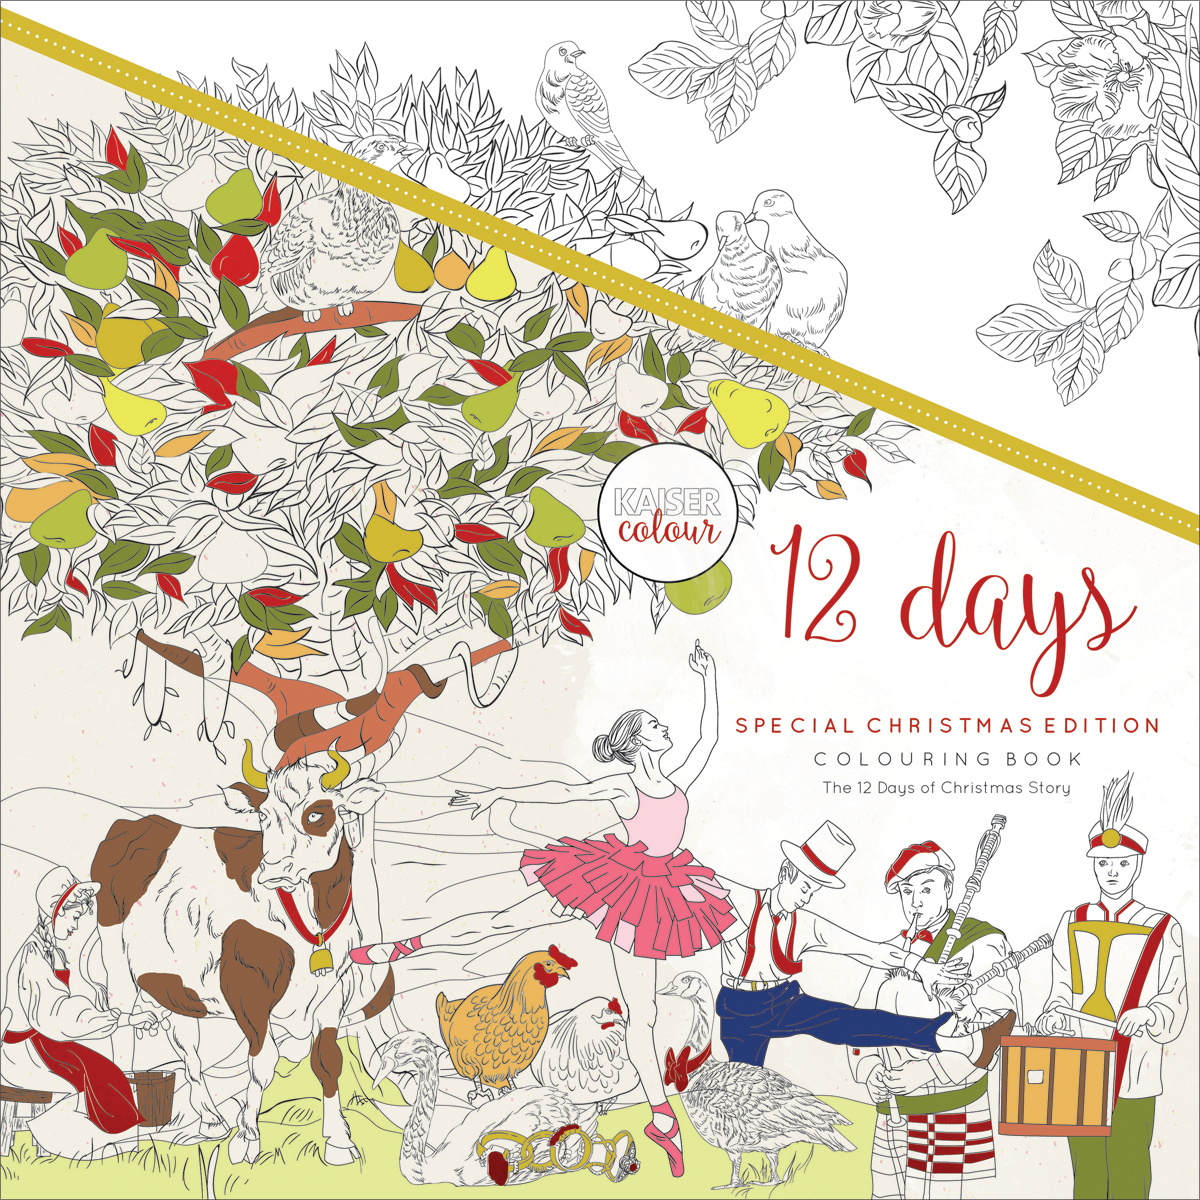 KaiserColour Perfect Bound Coloring Book 9.75X9.75-12 Days Of Christmas